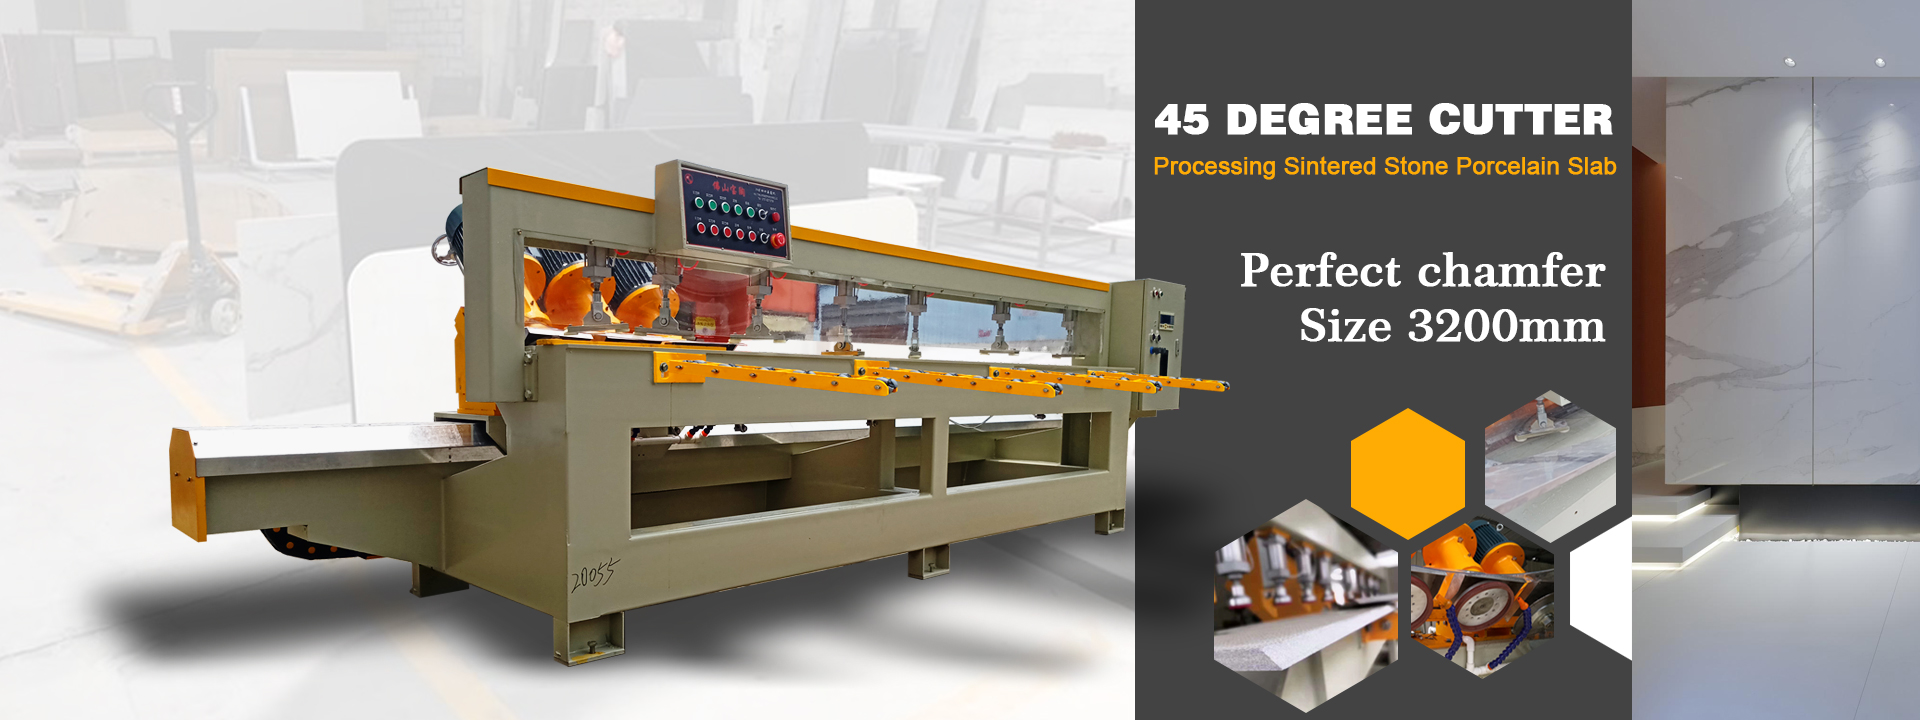 3200mm 45 degree cutter machine for processing sintered stone porcelain slab.